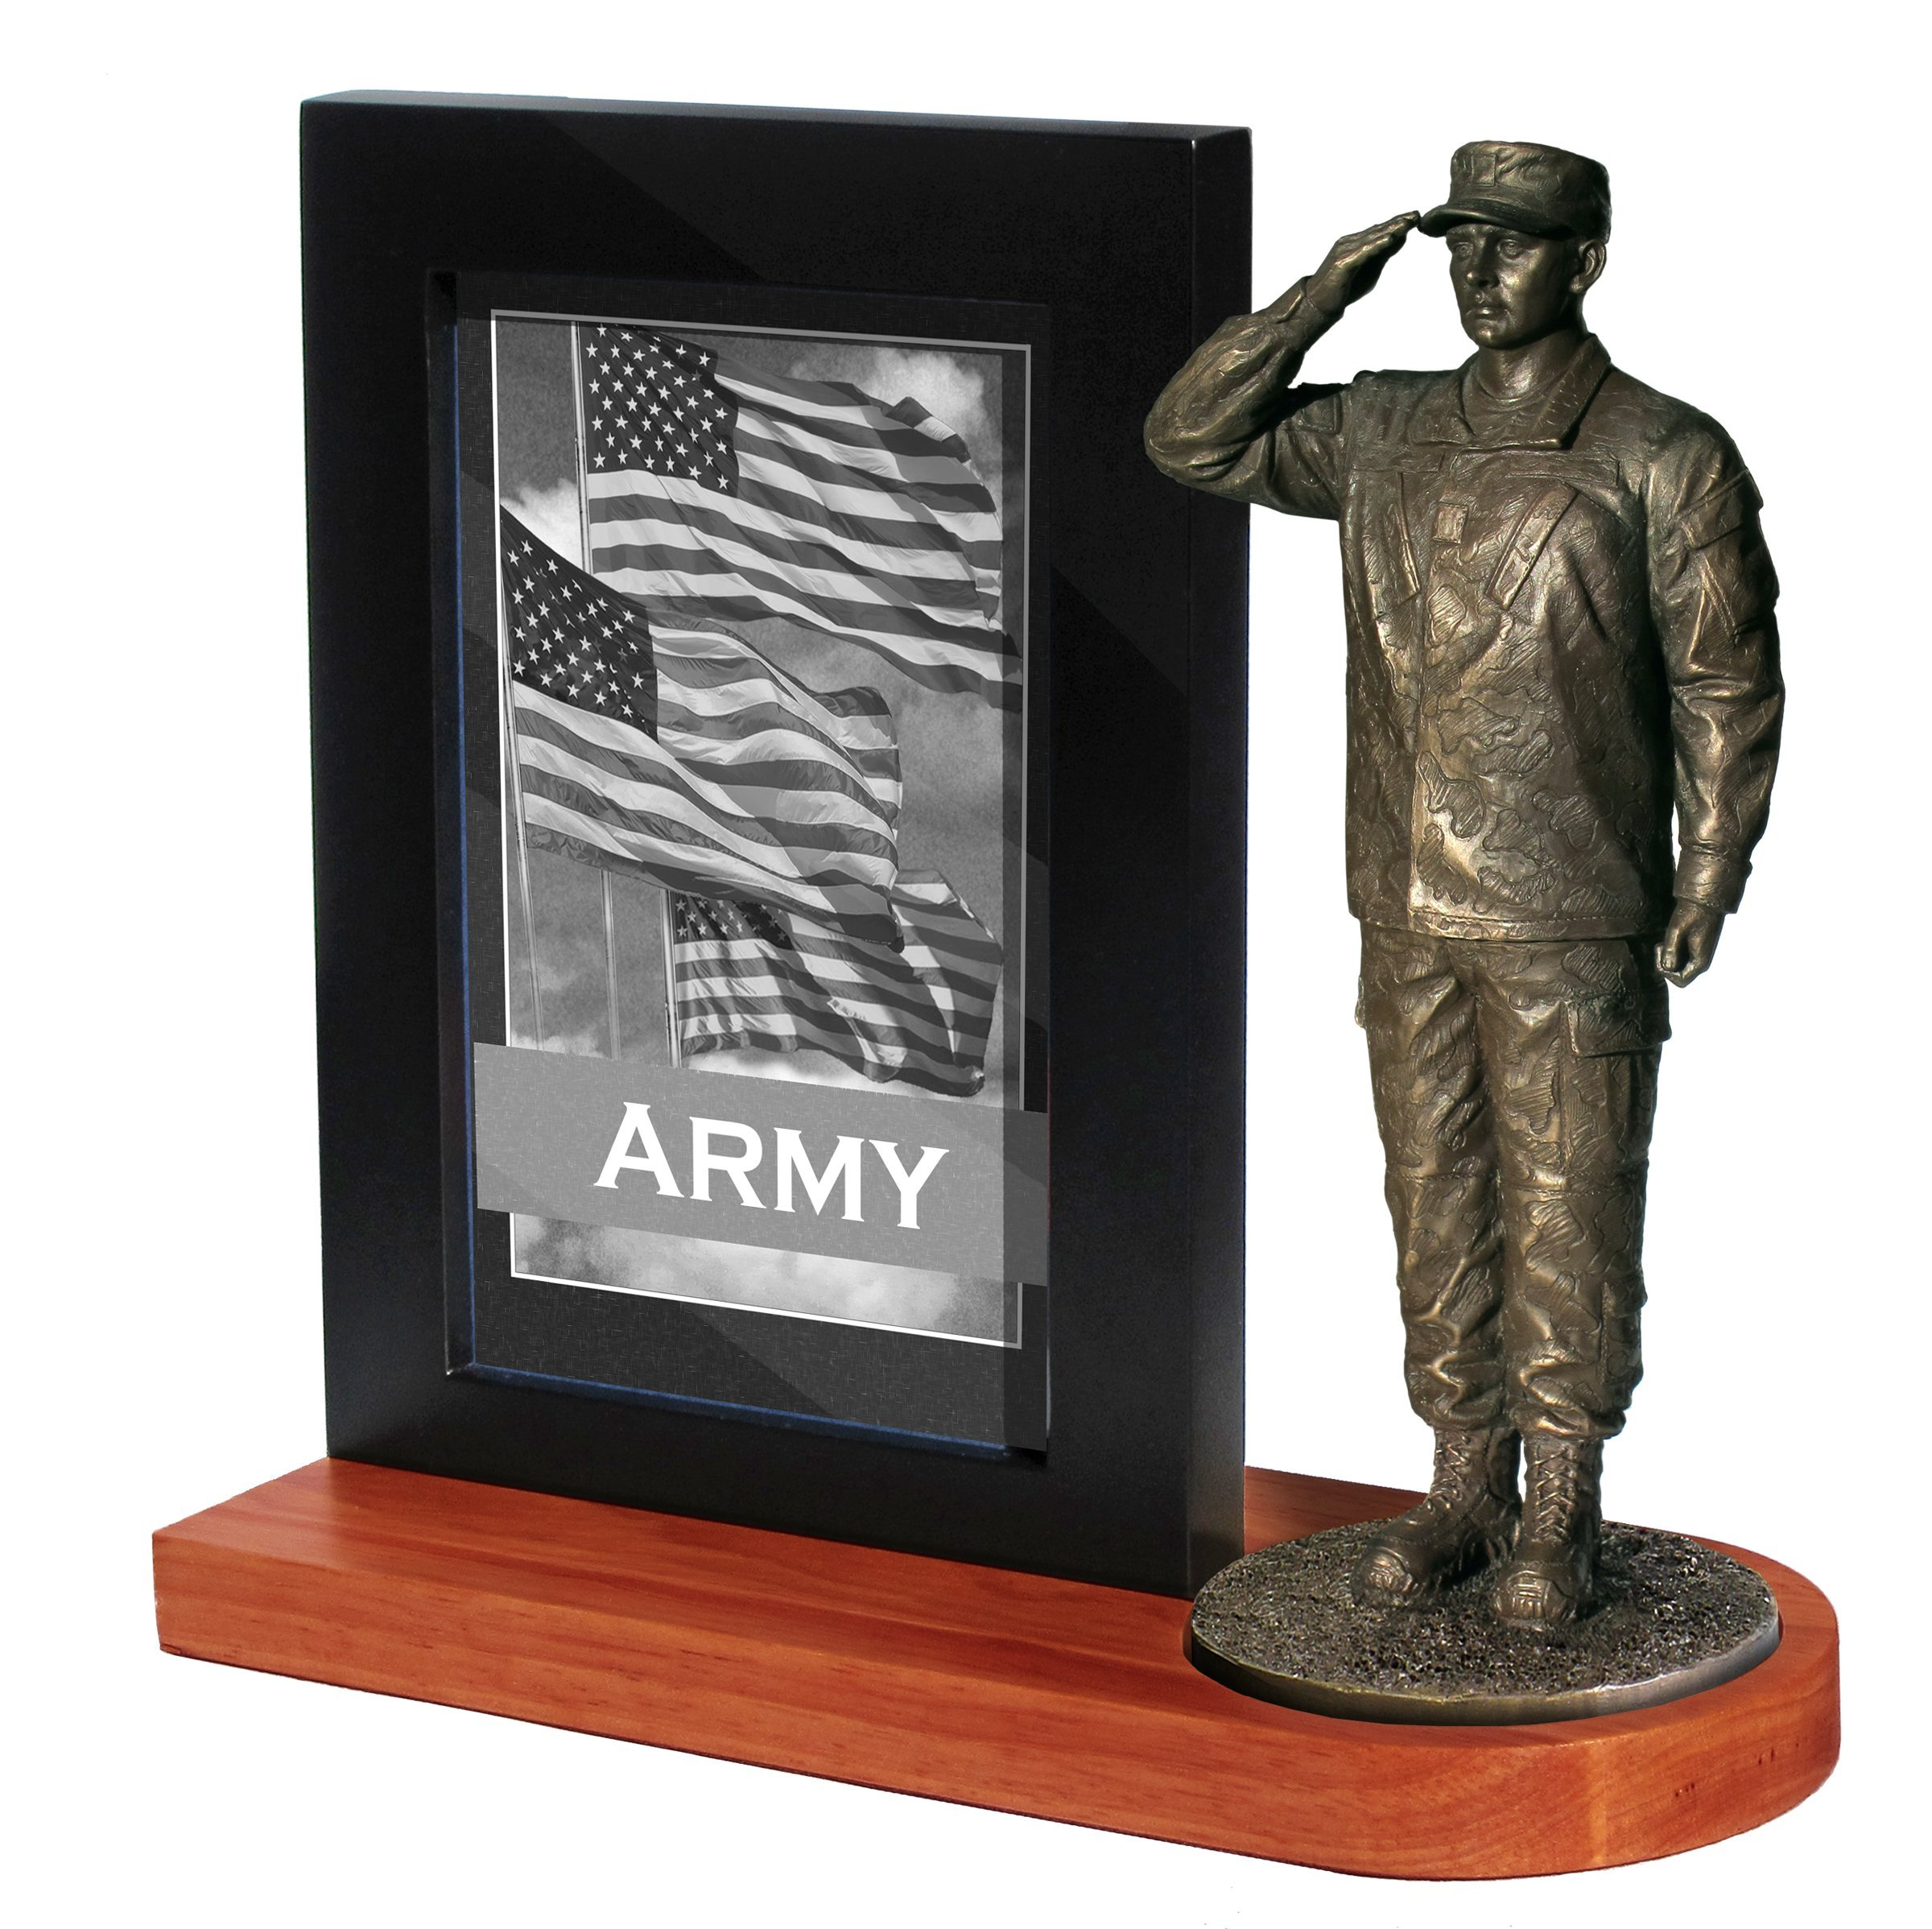 Khaki Army MD103W US Army Soldier in Army Combat Uniform Saluting on Wood Base with 4x6 Photo Frame by KHAKI ARMY USA